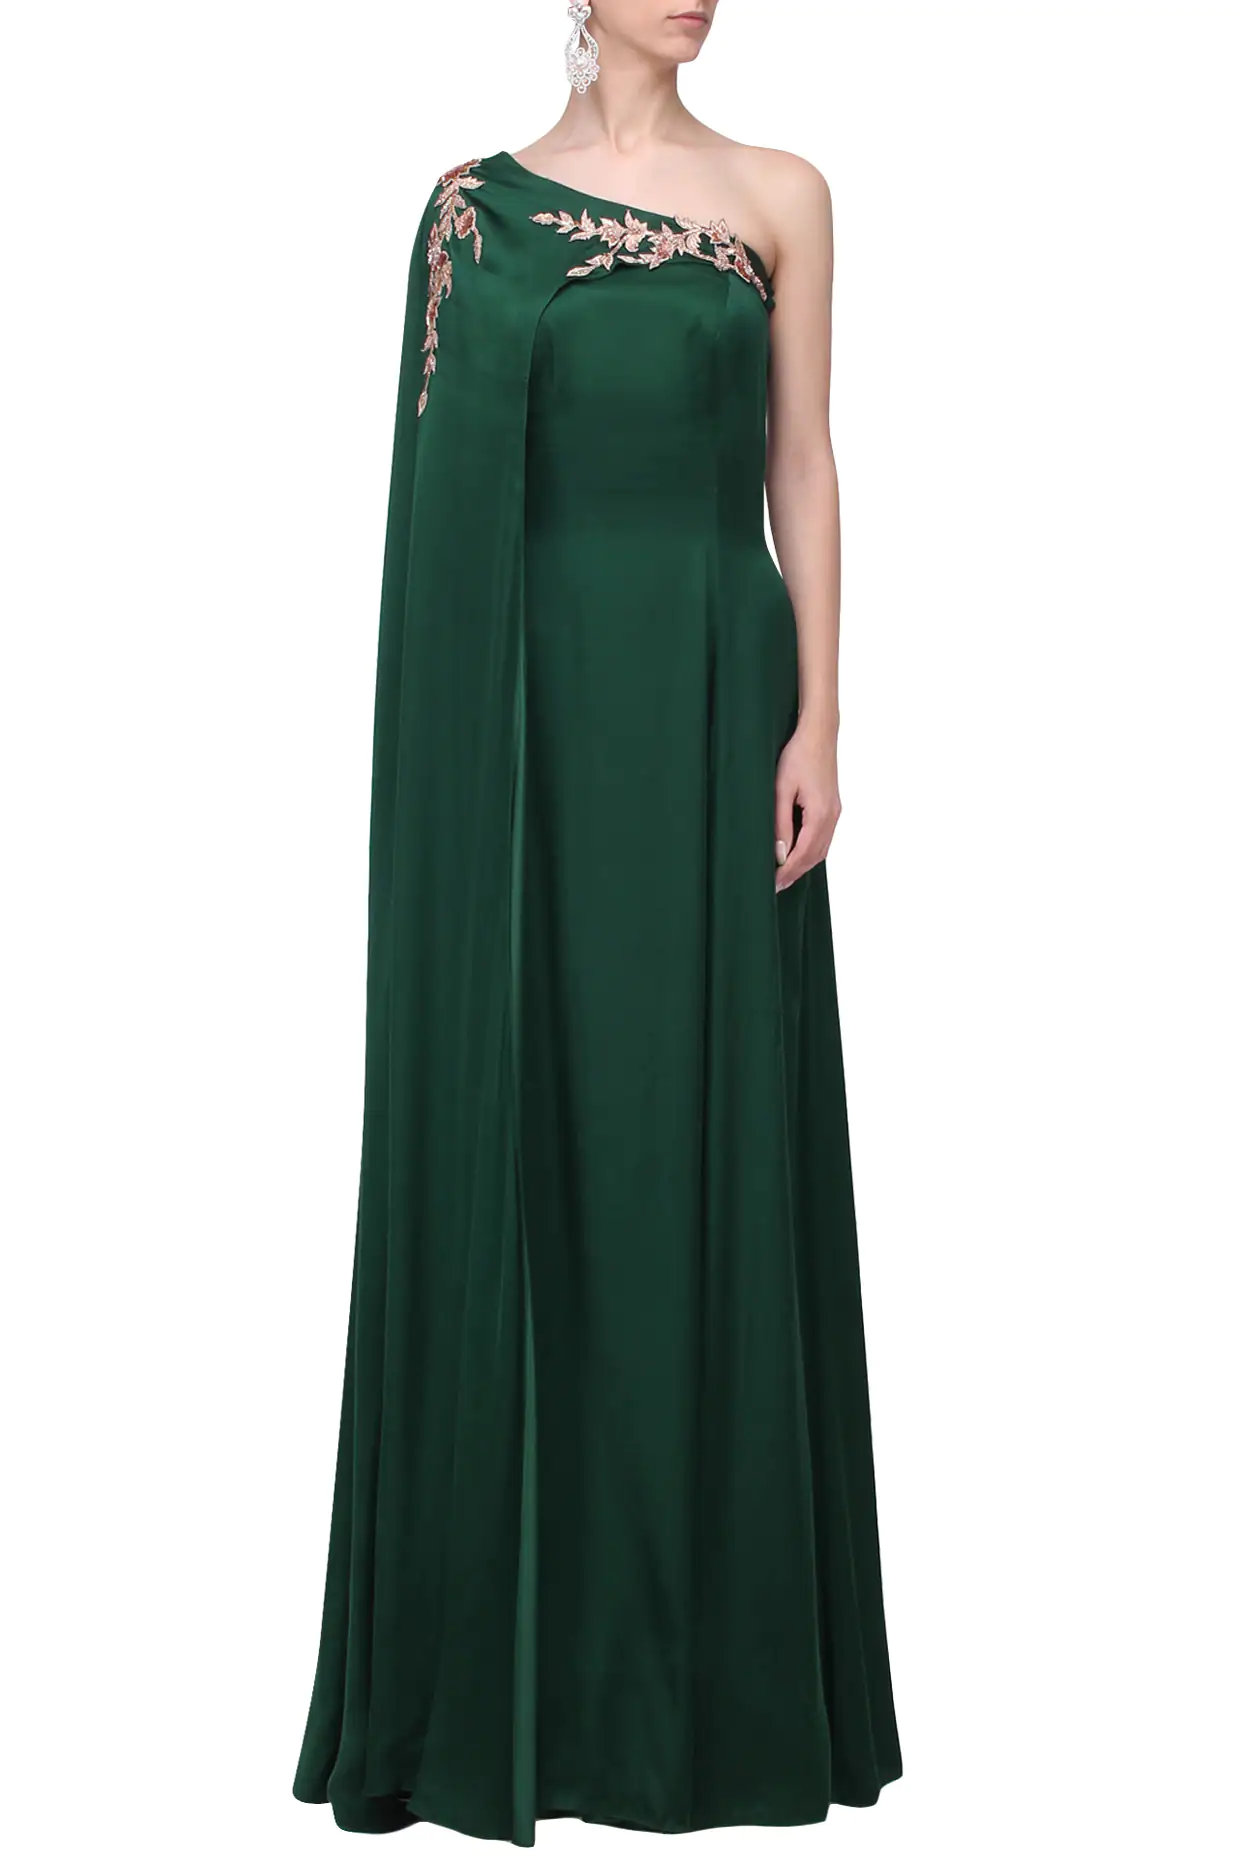 Green Embroidered Drape Gown